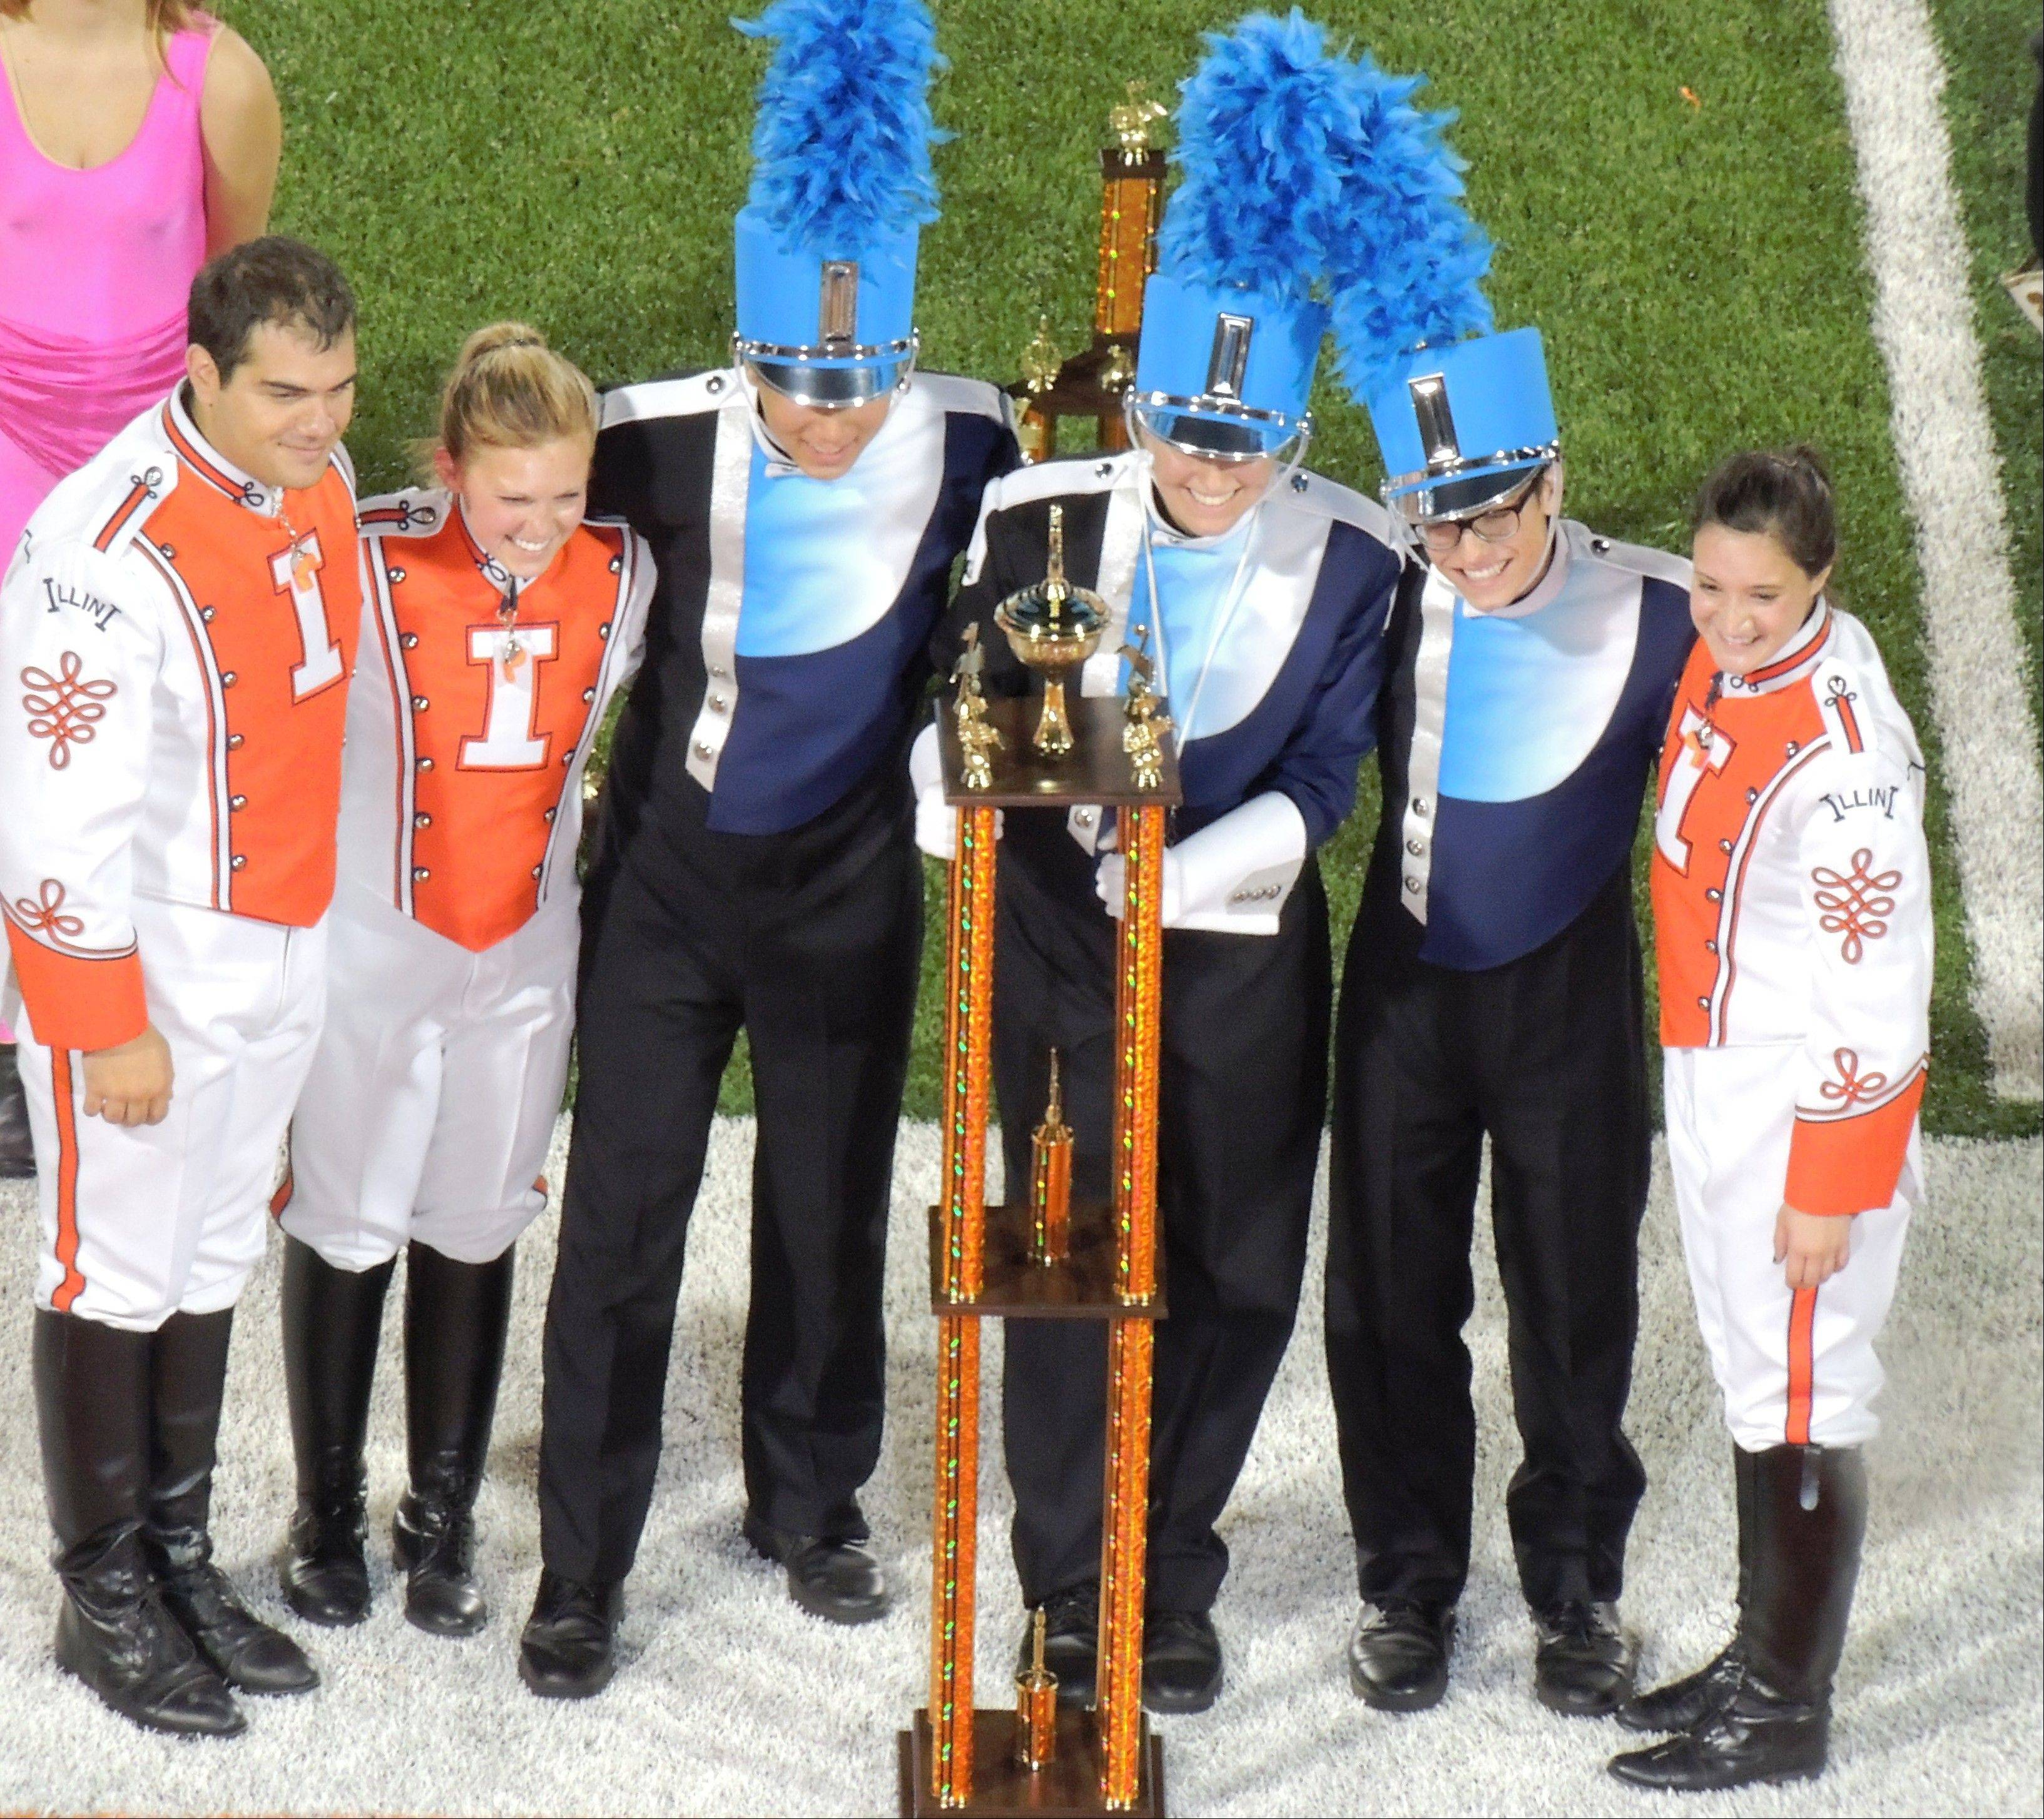 Prospect Marching Knights drum majors (in blue and white) Alex Yoo, left center, Destiny Duraj, center and Ted Marzolf, right center, accept the Grand Championship trophy.